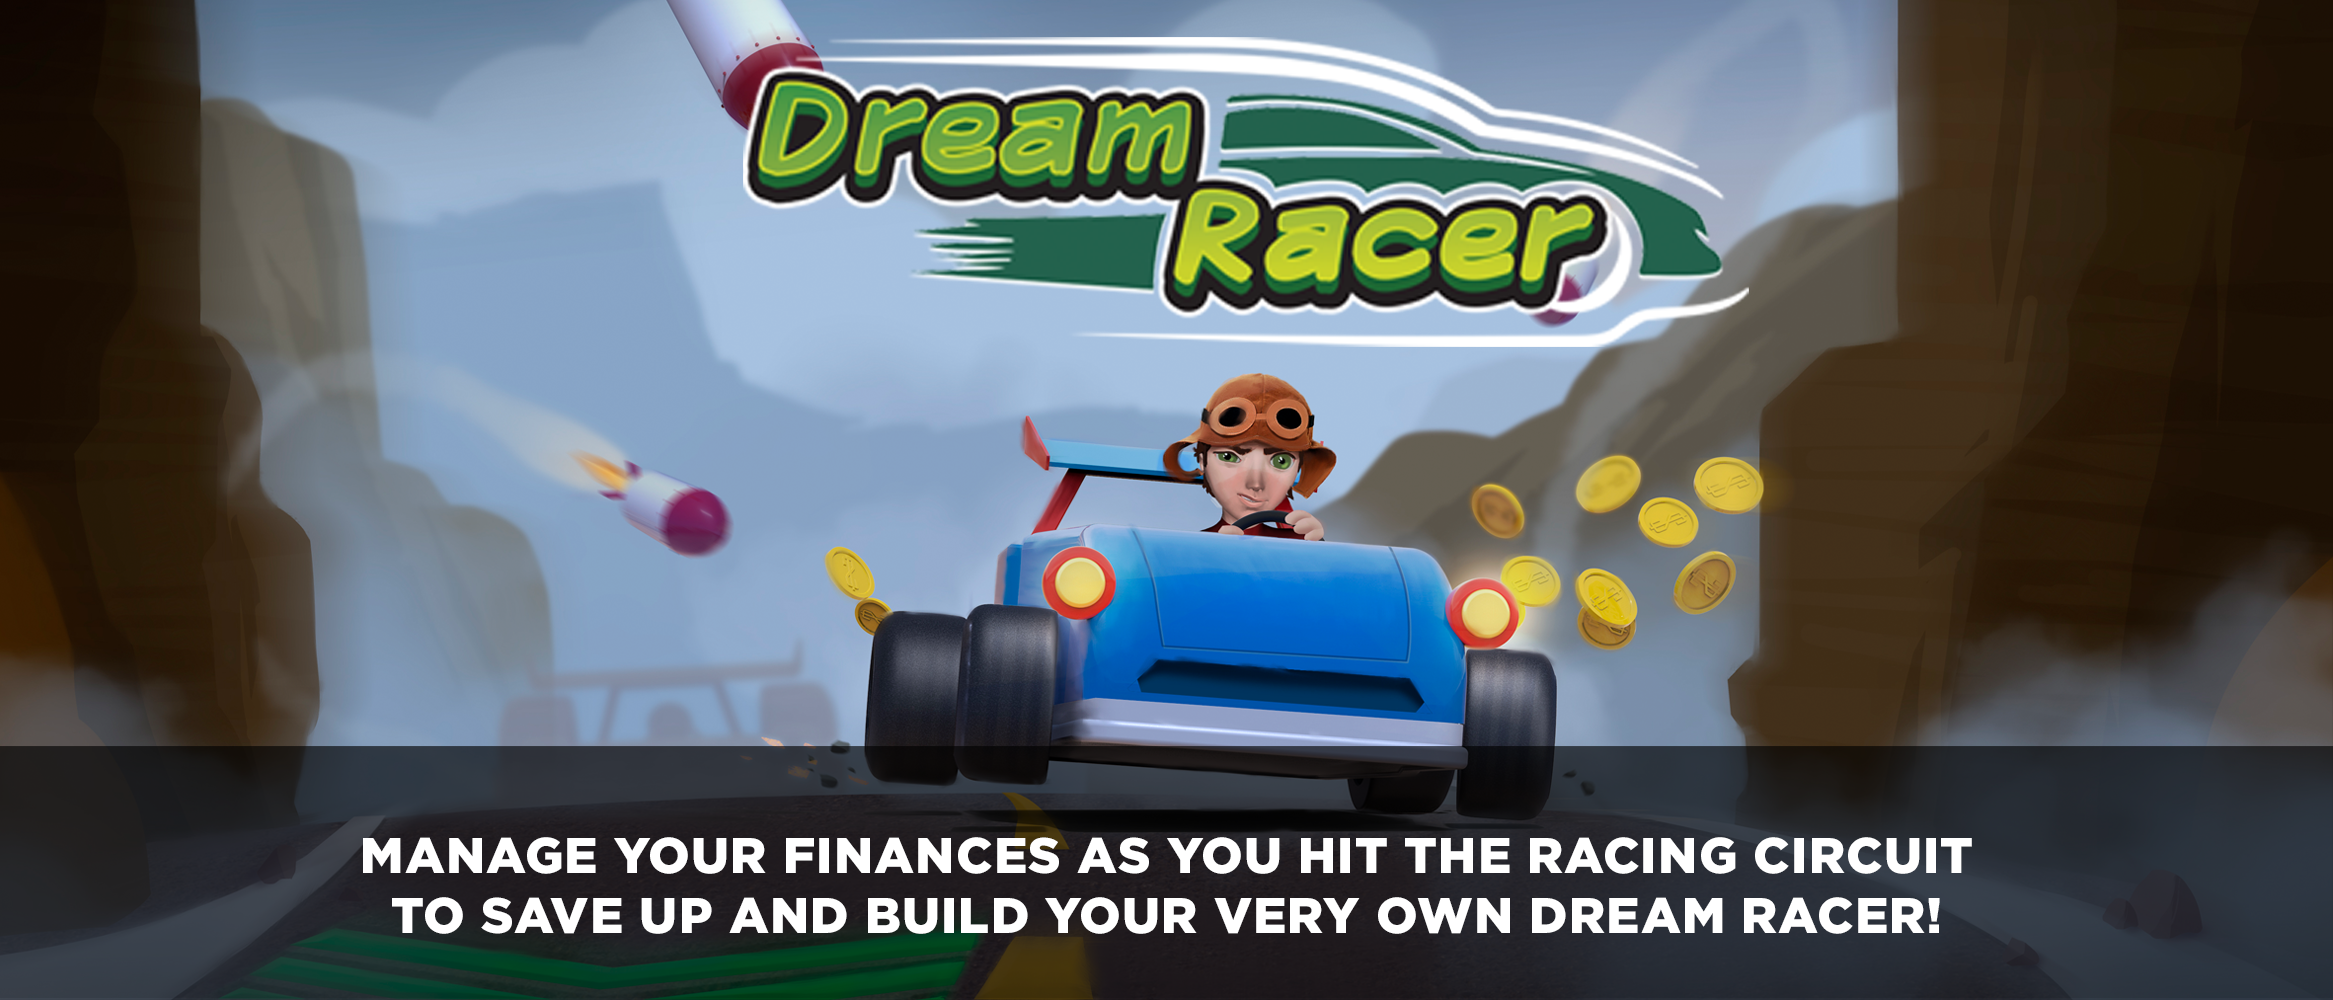 DREAM RACER